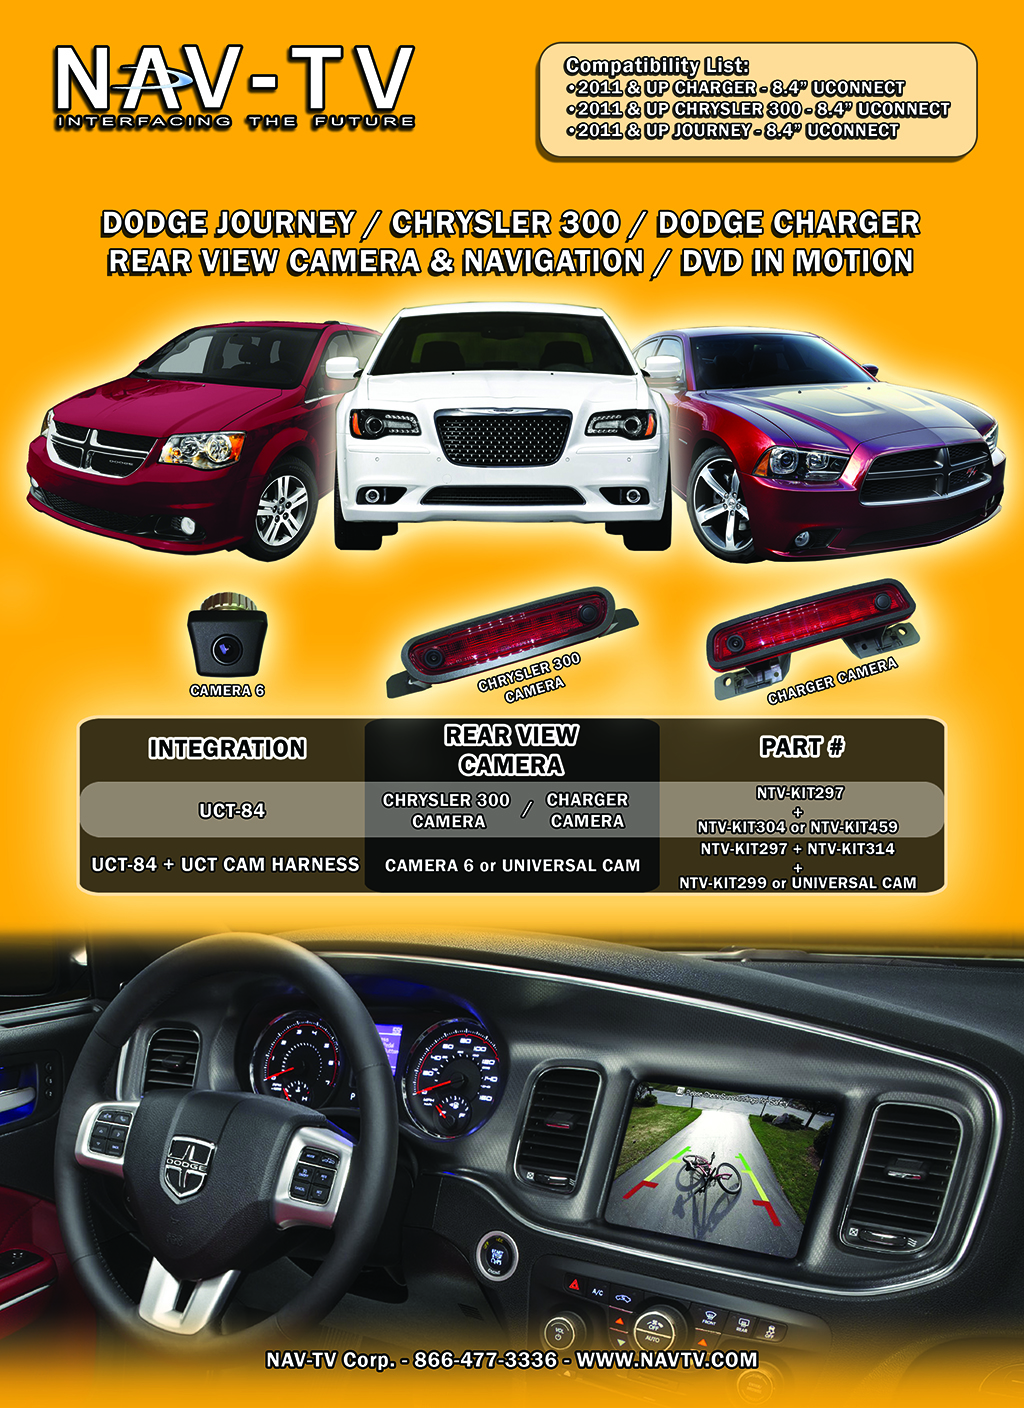 Audio System Wiring Diagram On Uconnect Dodge Journey Wiring Harness